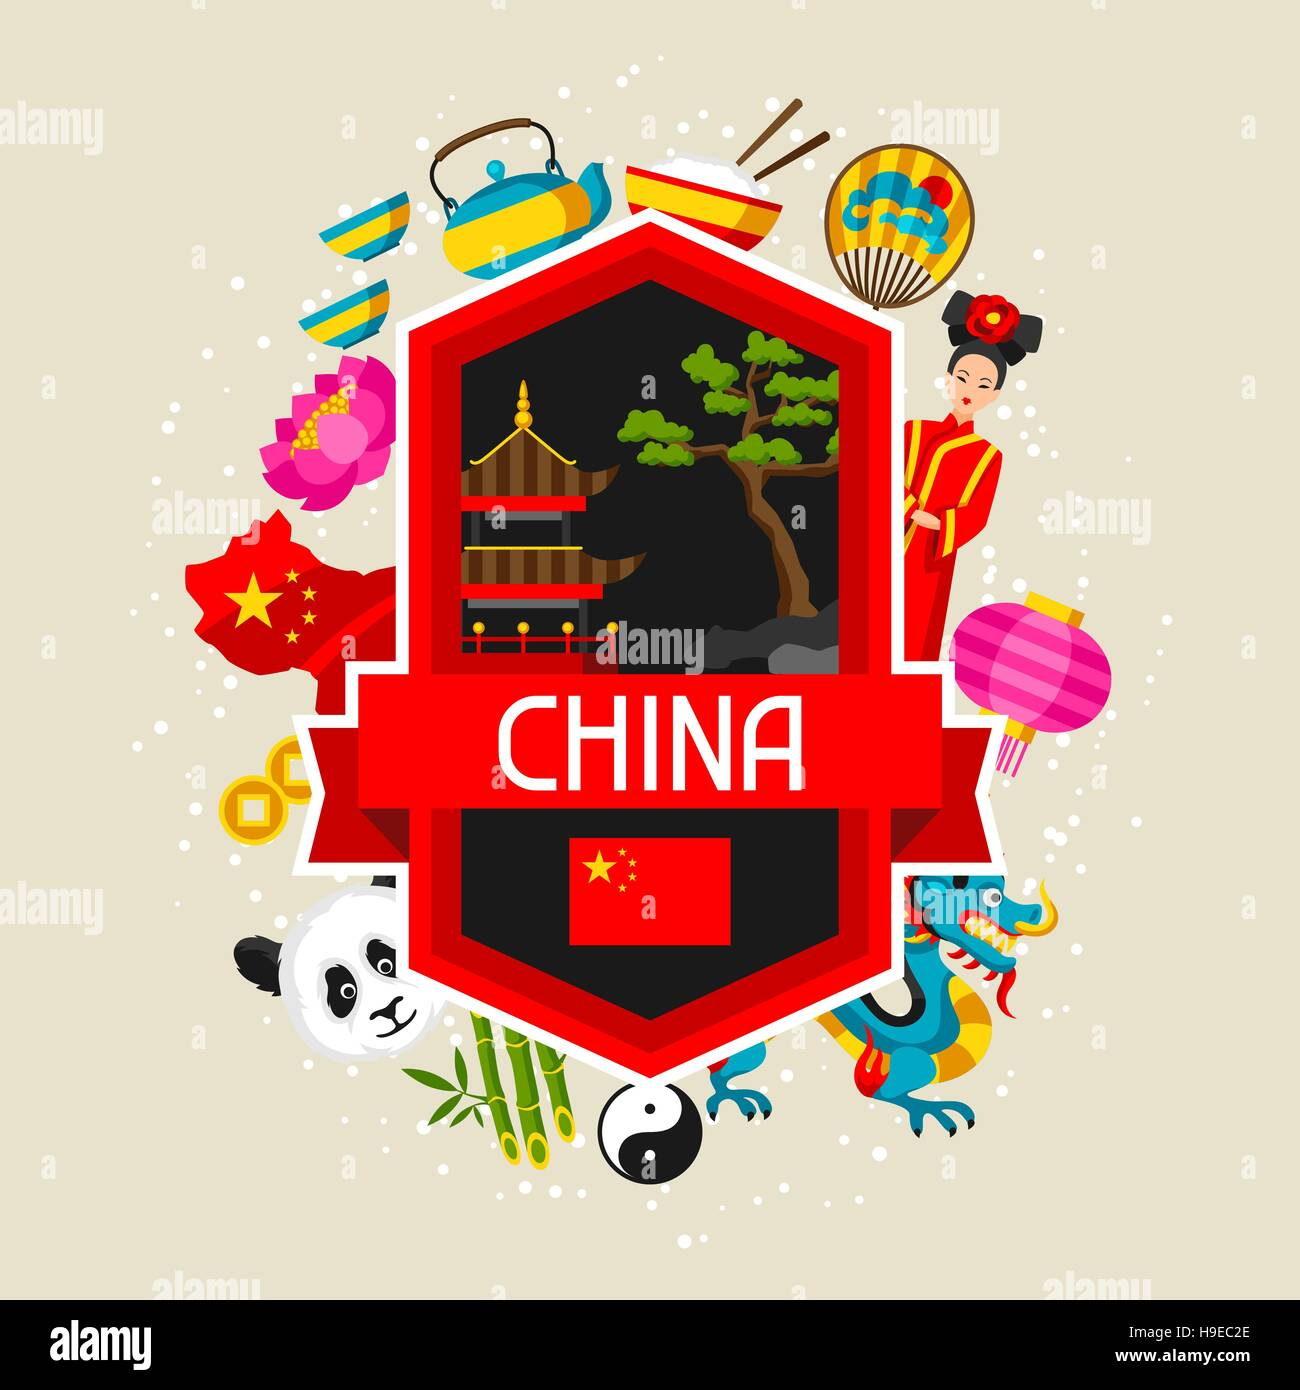 China Background Design Chinese Symbols And Objects Stock Vector